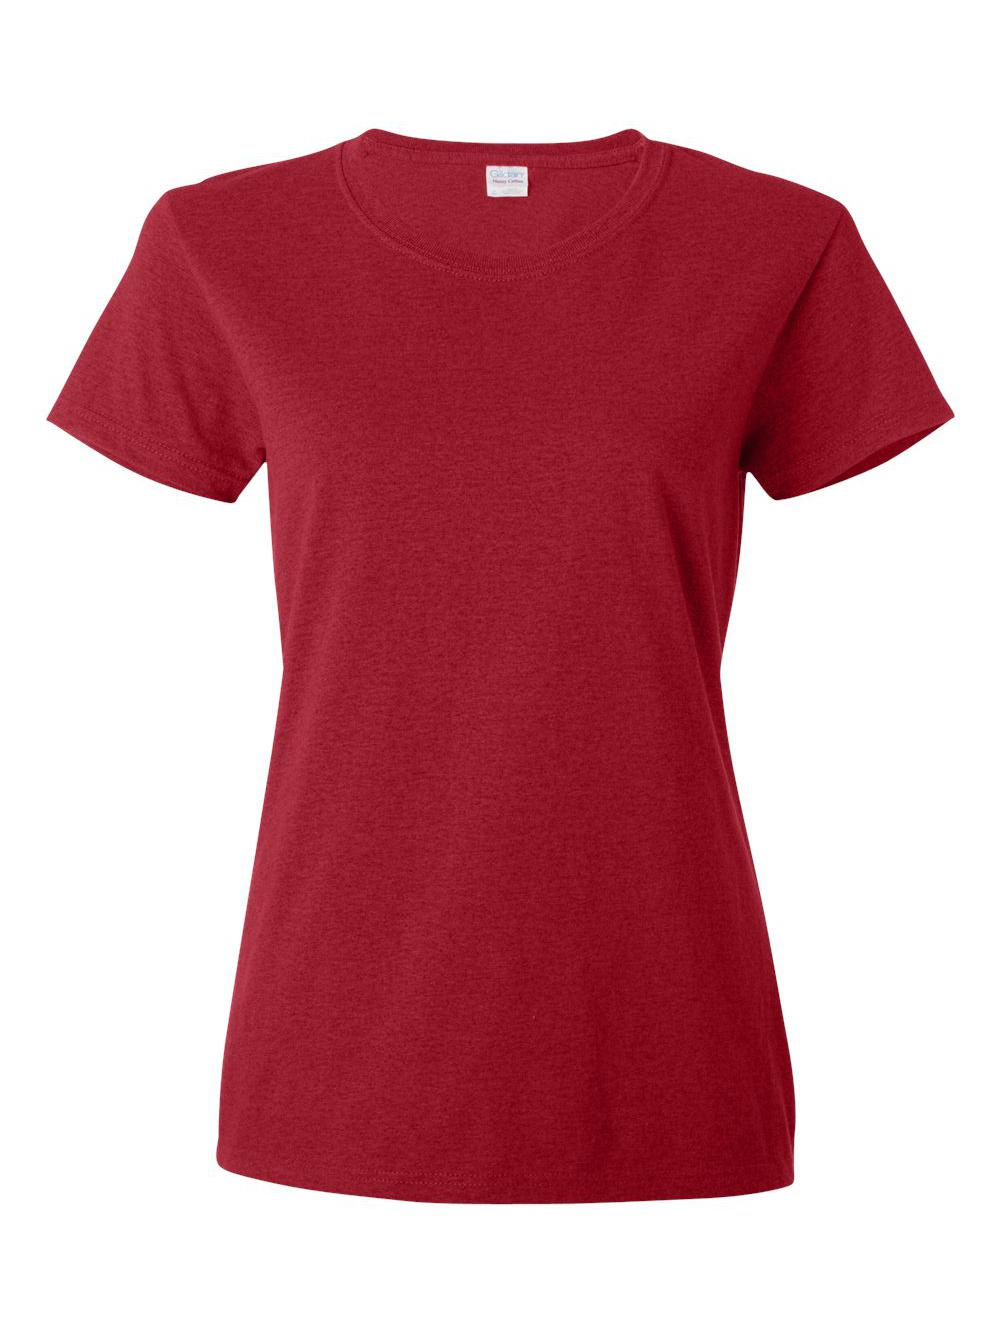 Gildan-Heavy-Cotton-Women-039-s-Short-Sleeve-T-Shirt-5000L thumbnail 3